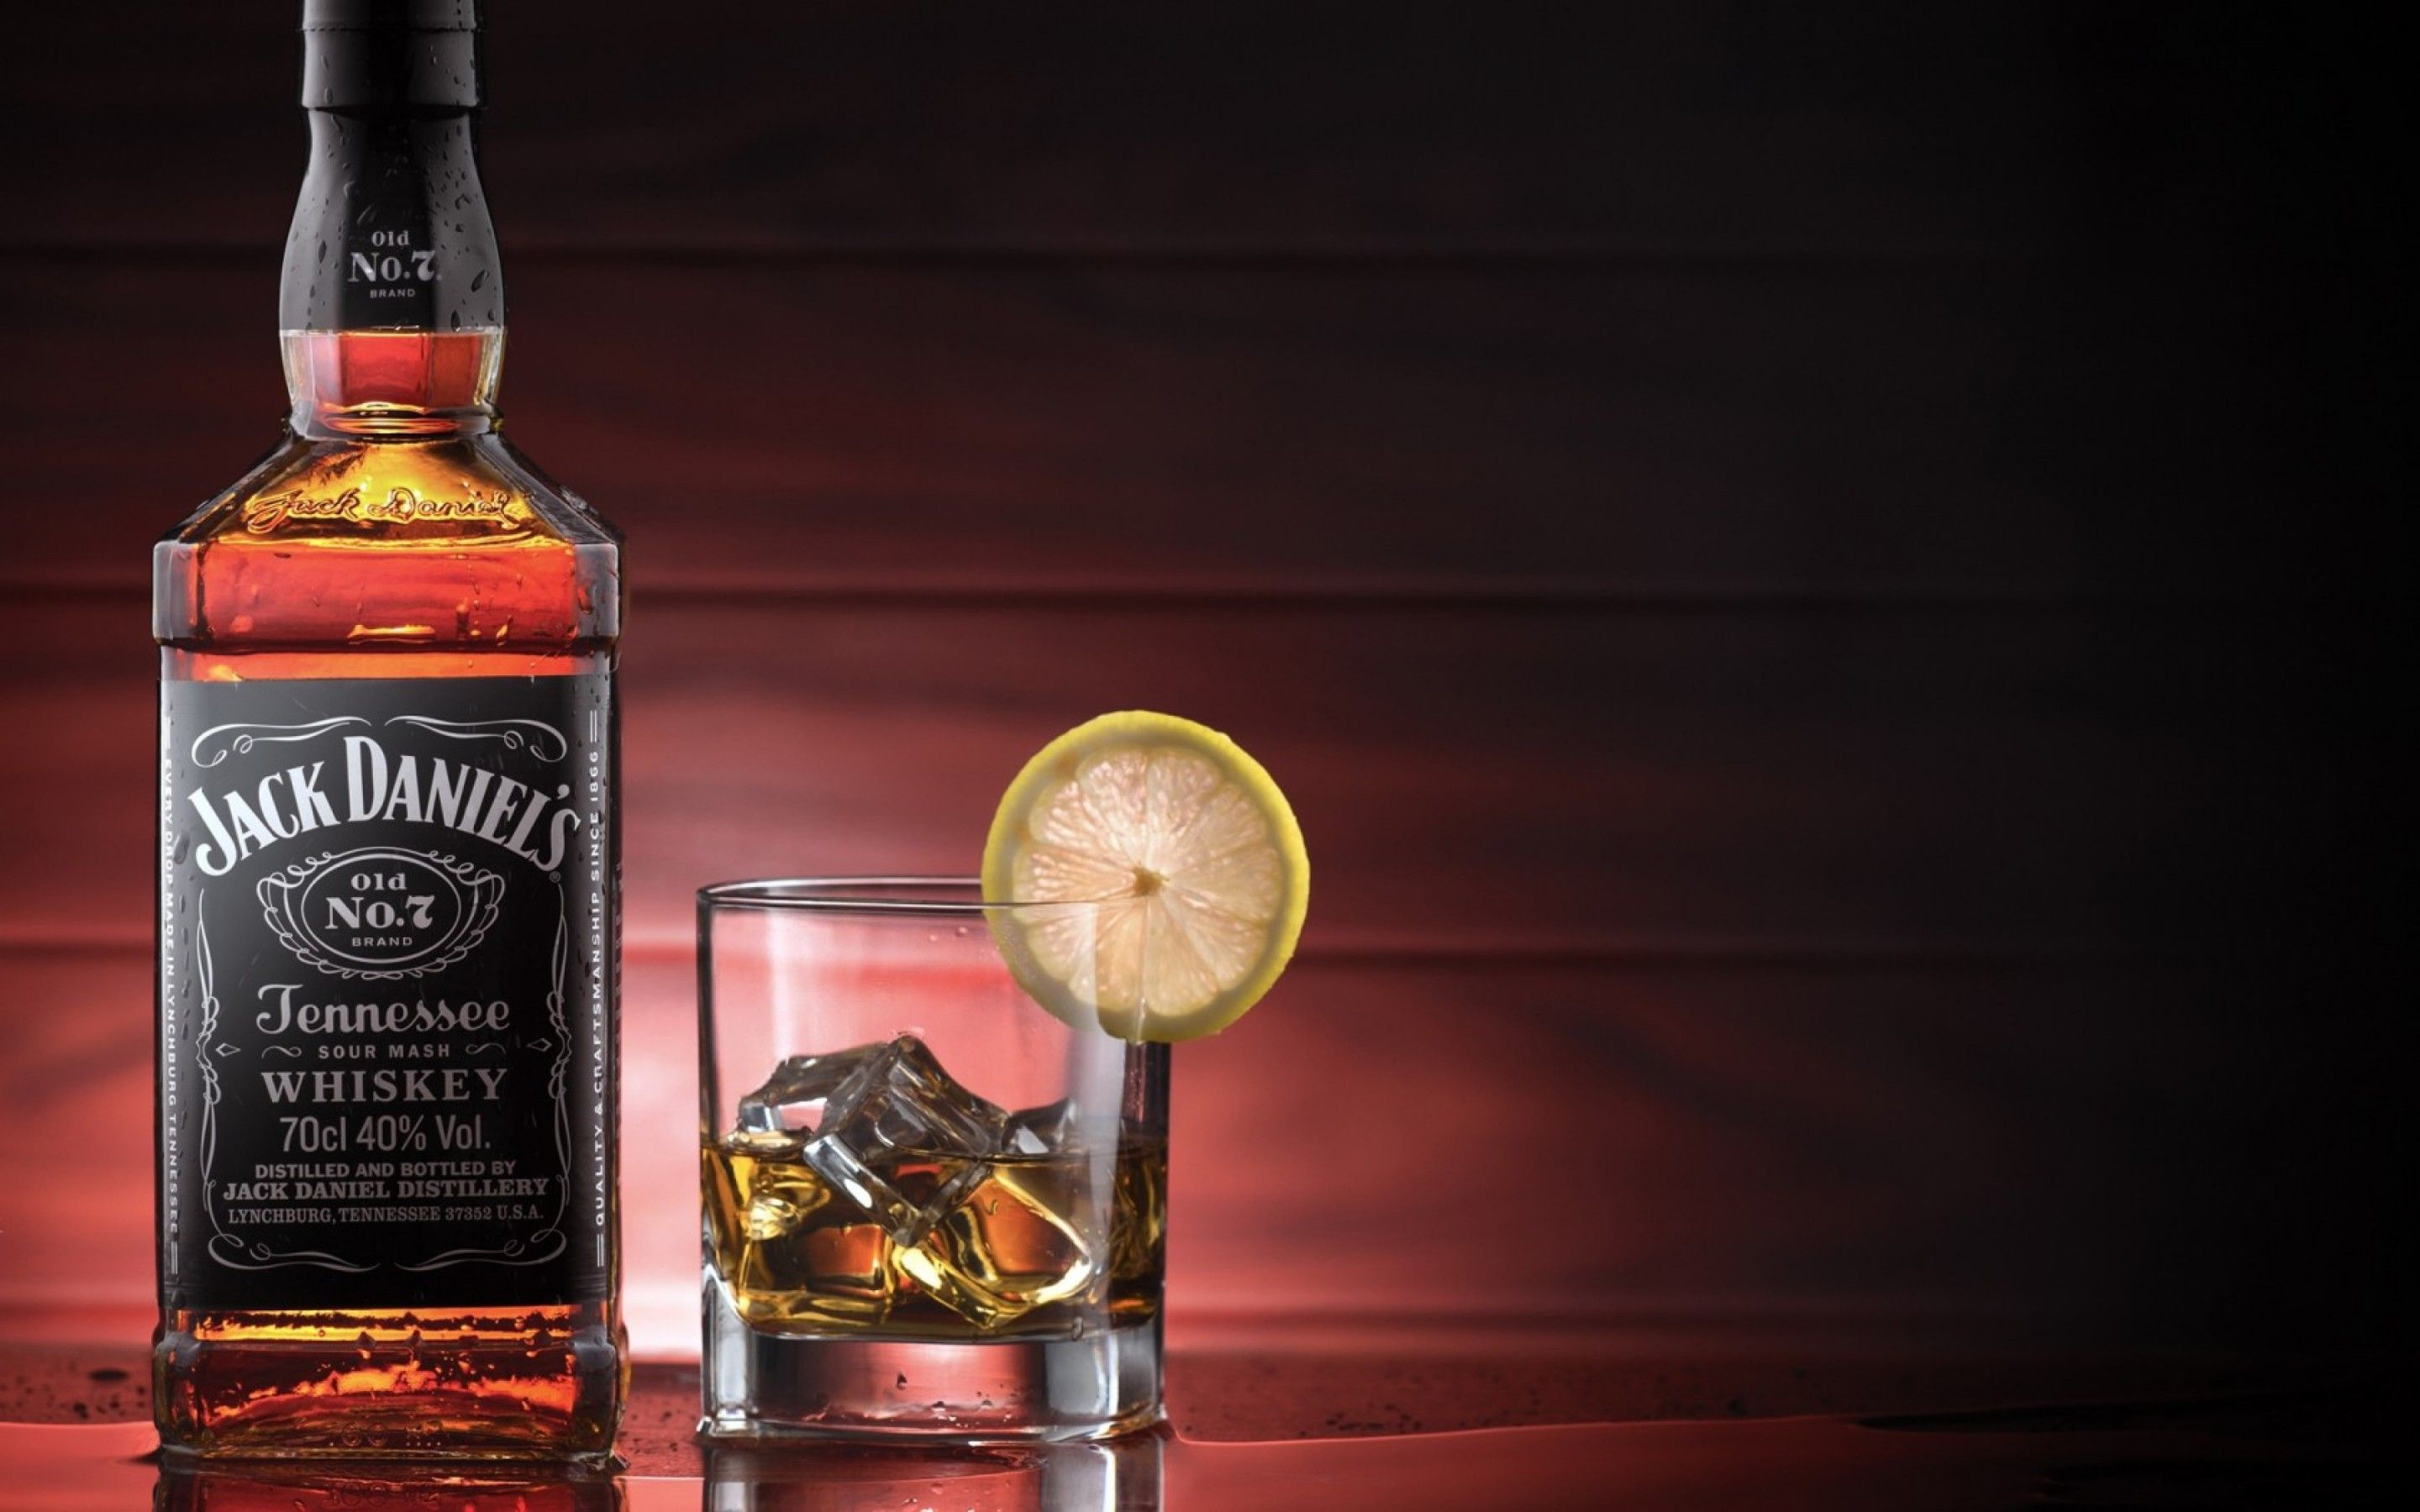 Jack Daniels No 7 Whisky Is A Brand Of Sour Mash Tennessee Whiskey That Is The Maximum Selling American Whiskey In The World It I Jack Daniels Whiskey Alcohol